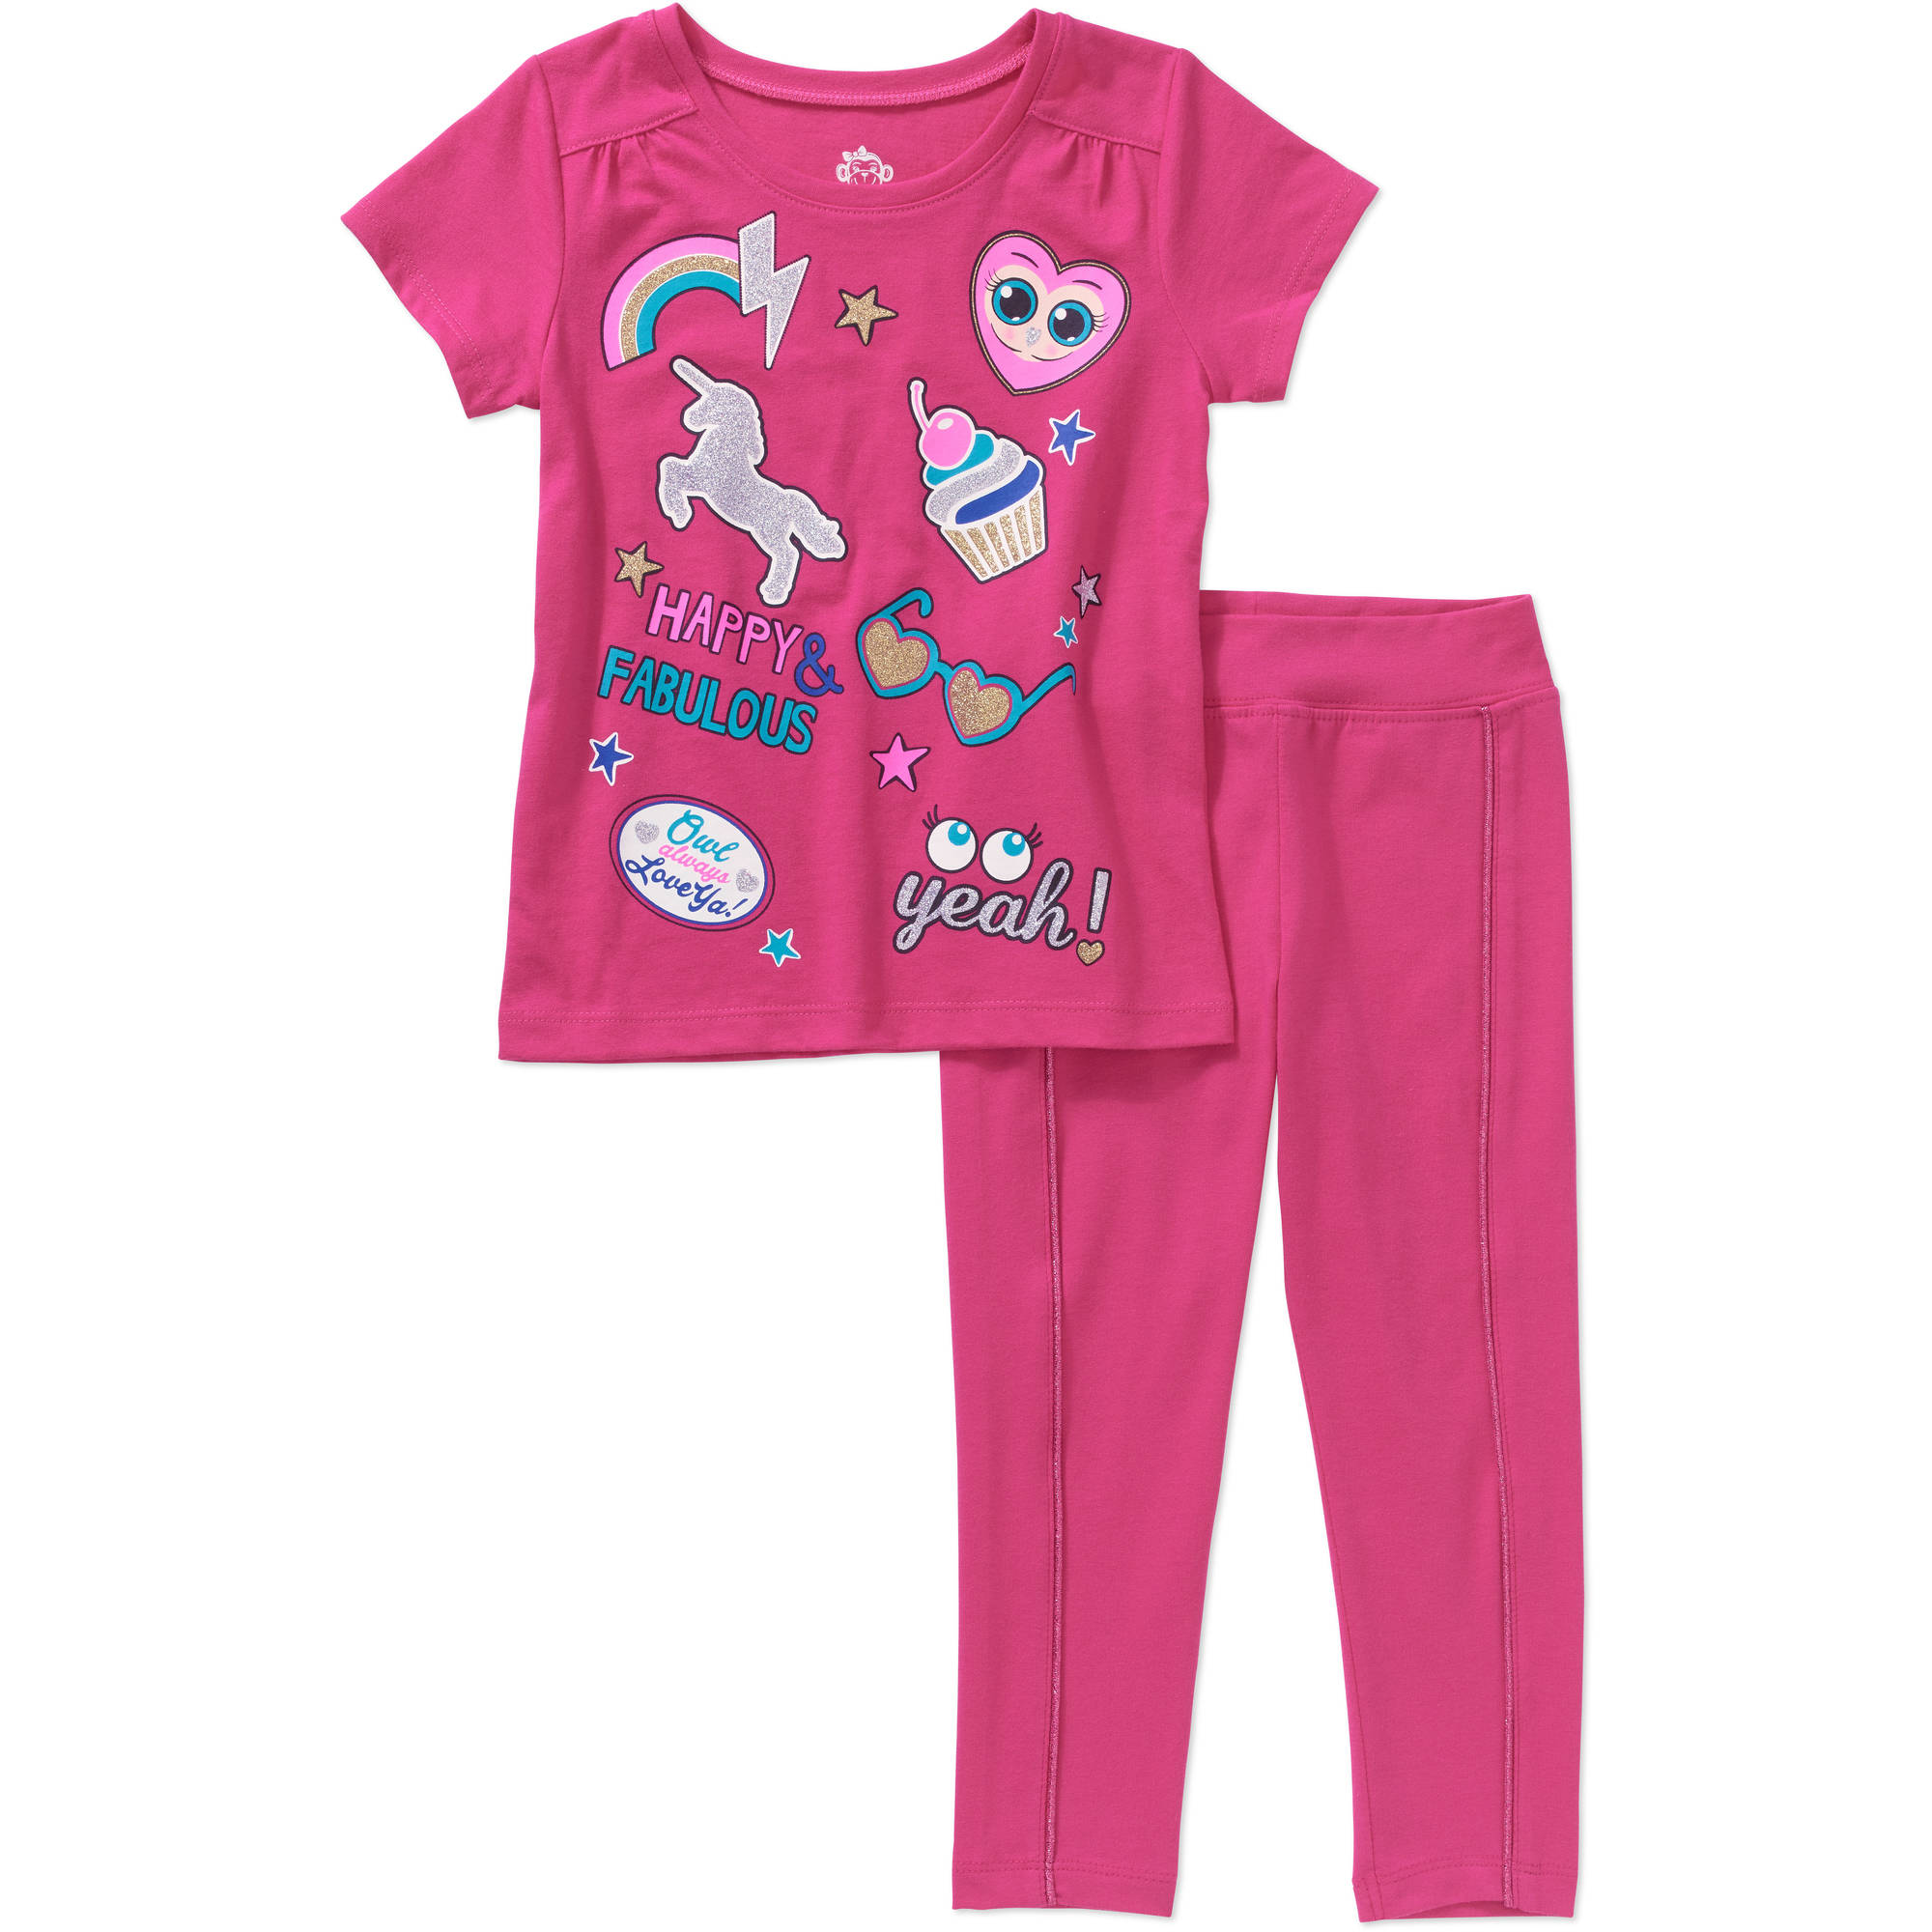 365 Kids from Garanimals Girls' Short Sleeve Graphic Tee and Solid Legging with Piping, Outfit Set